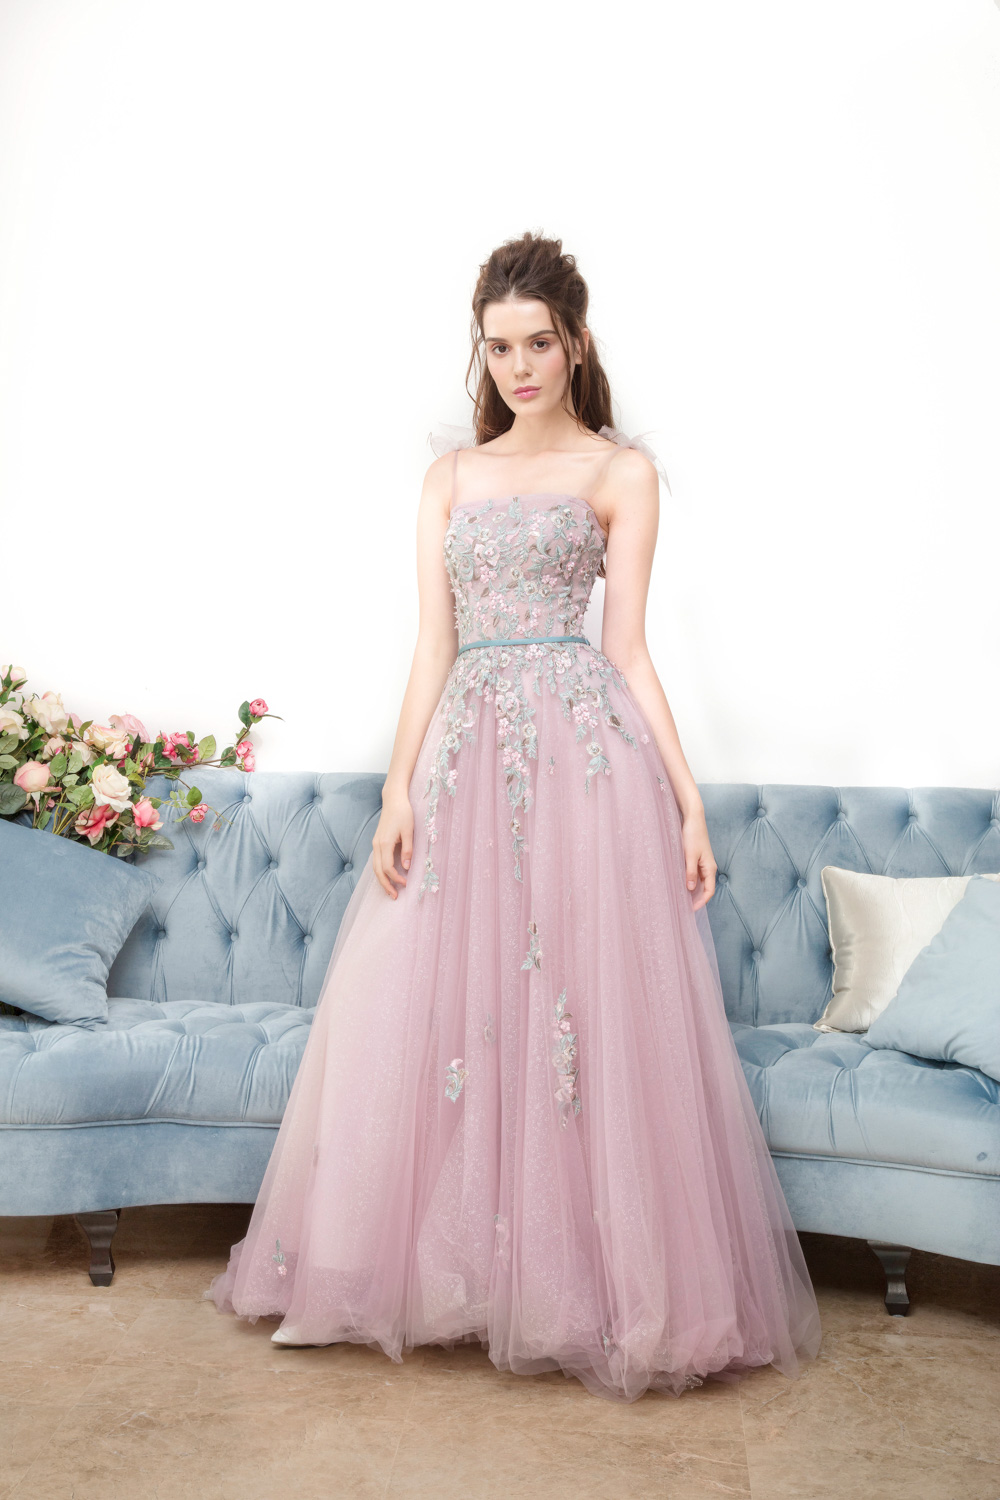 Pink evening gown by CCM Wedding